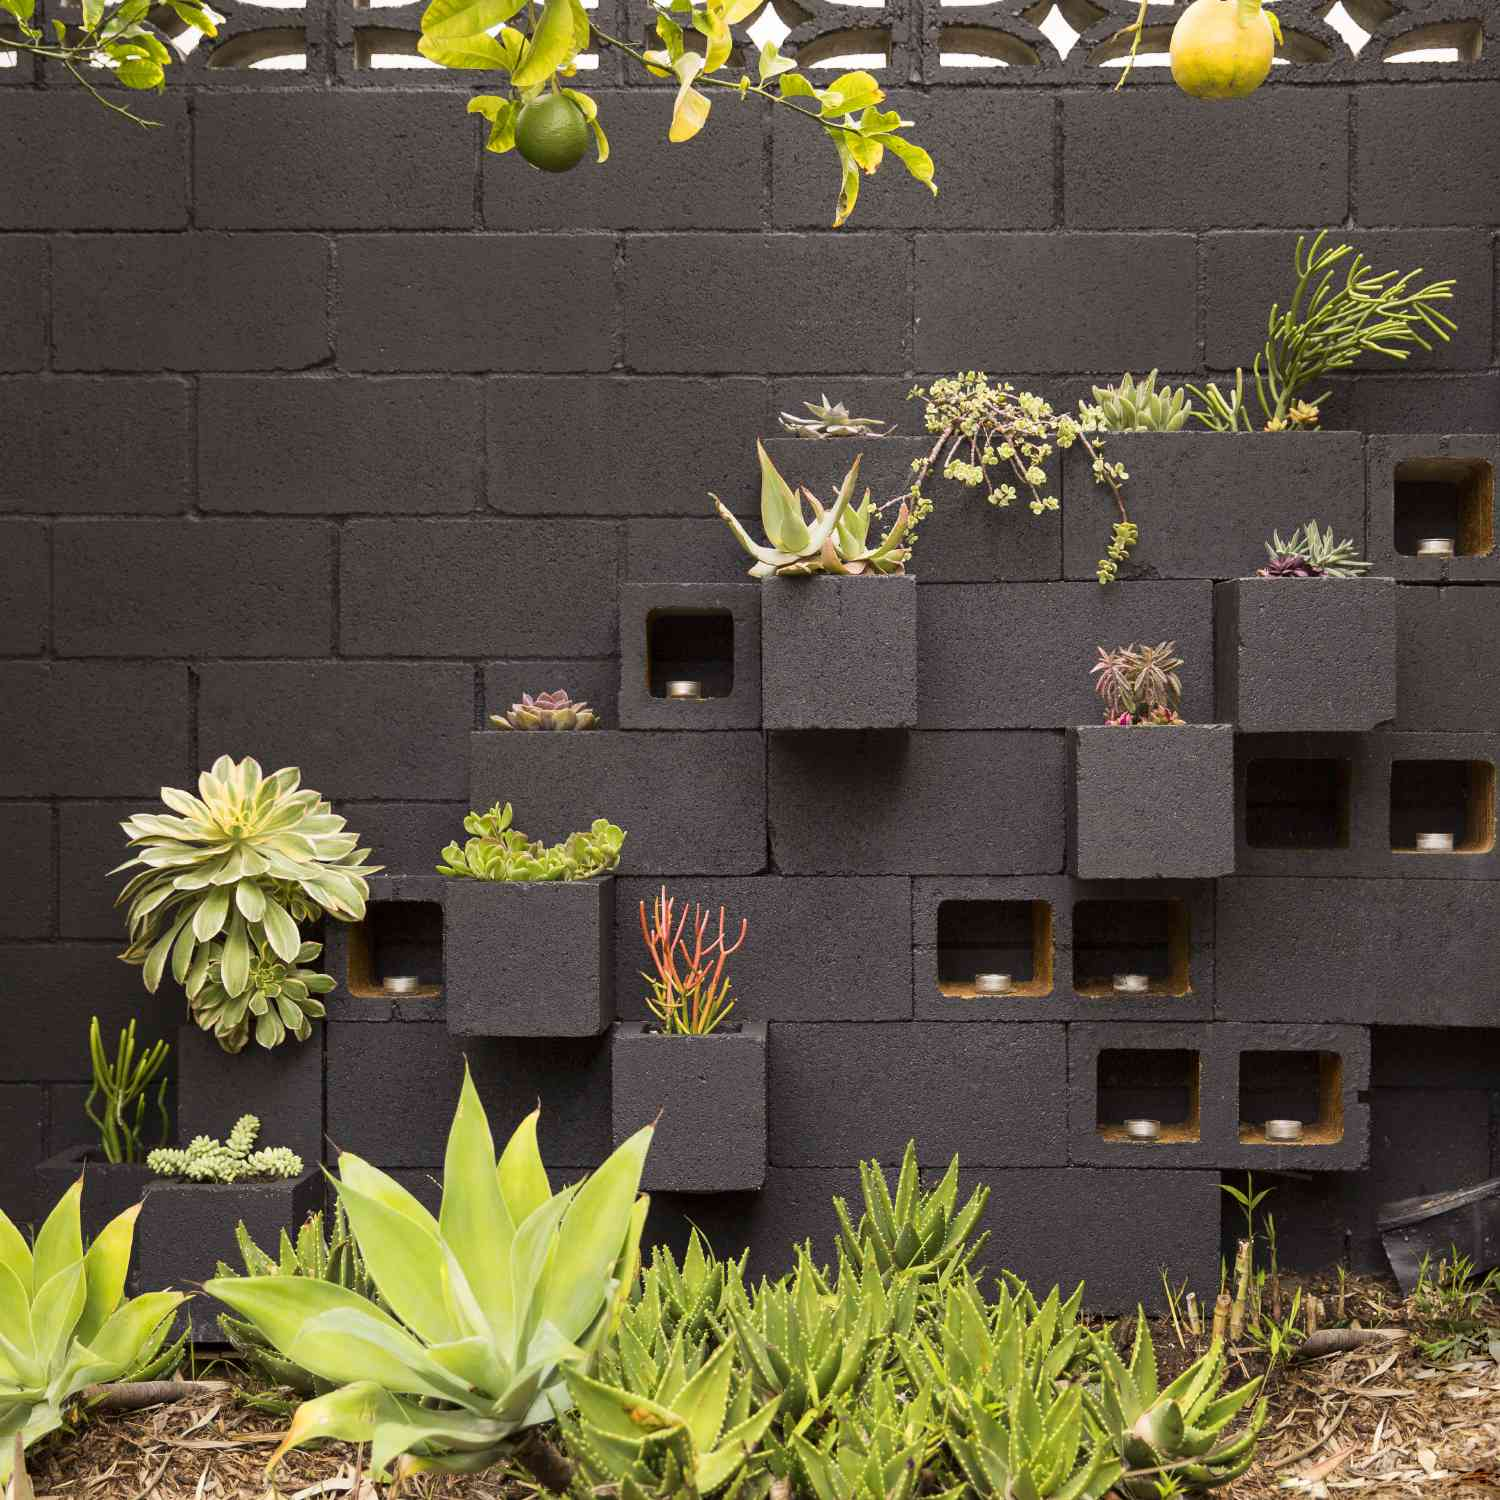 A gray cinder block wall with planters